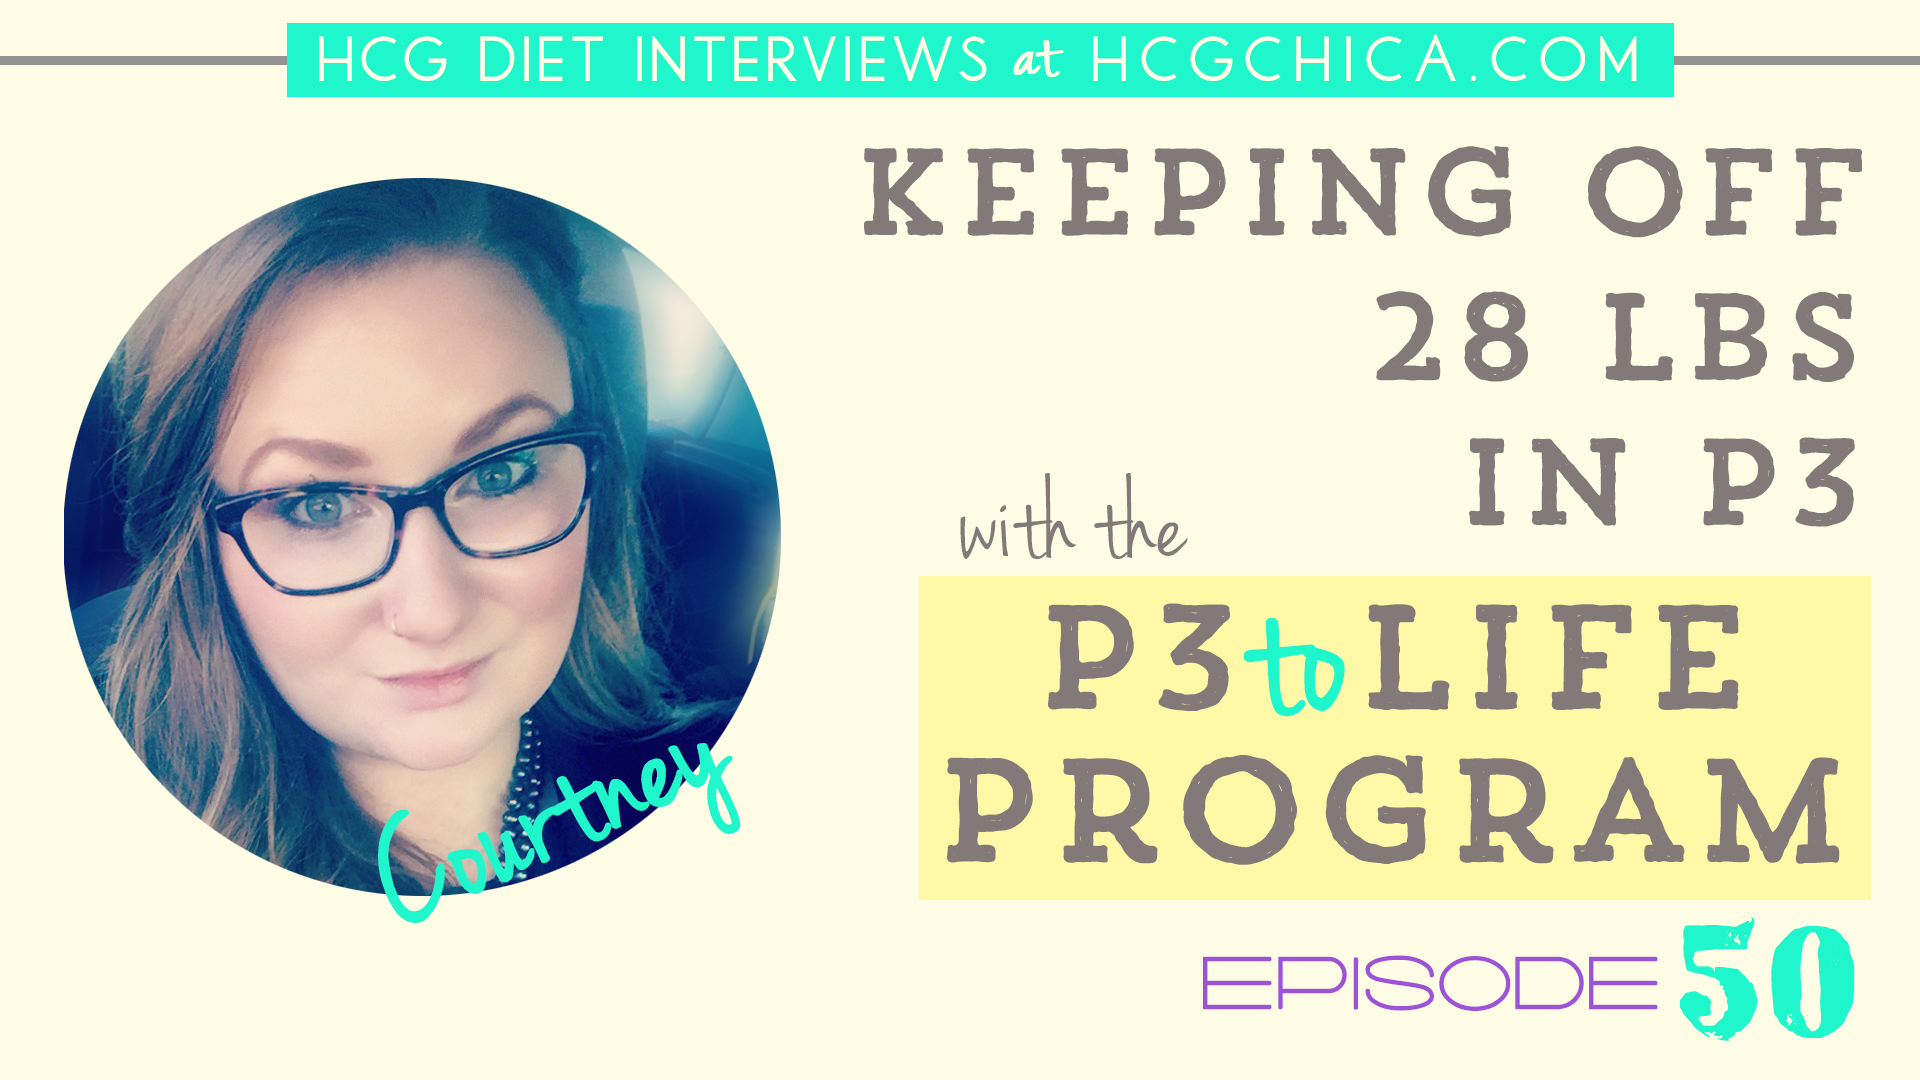 Hcg diet success stories video interviews with everyday people she skipped p3 during her first round 2 years ago gained back all the weight loss and added more ccuart Gallery